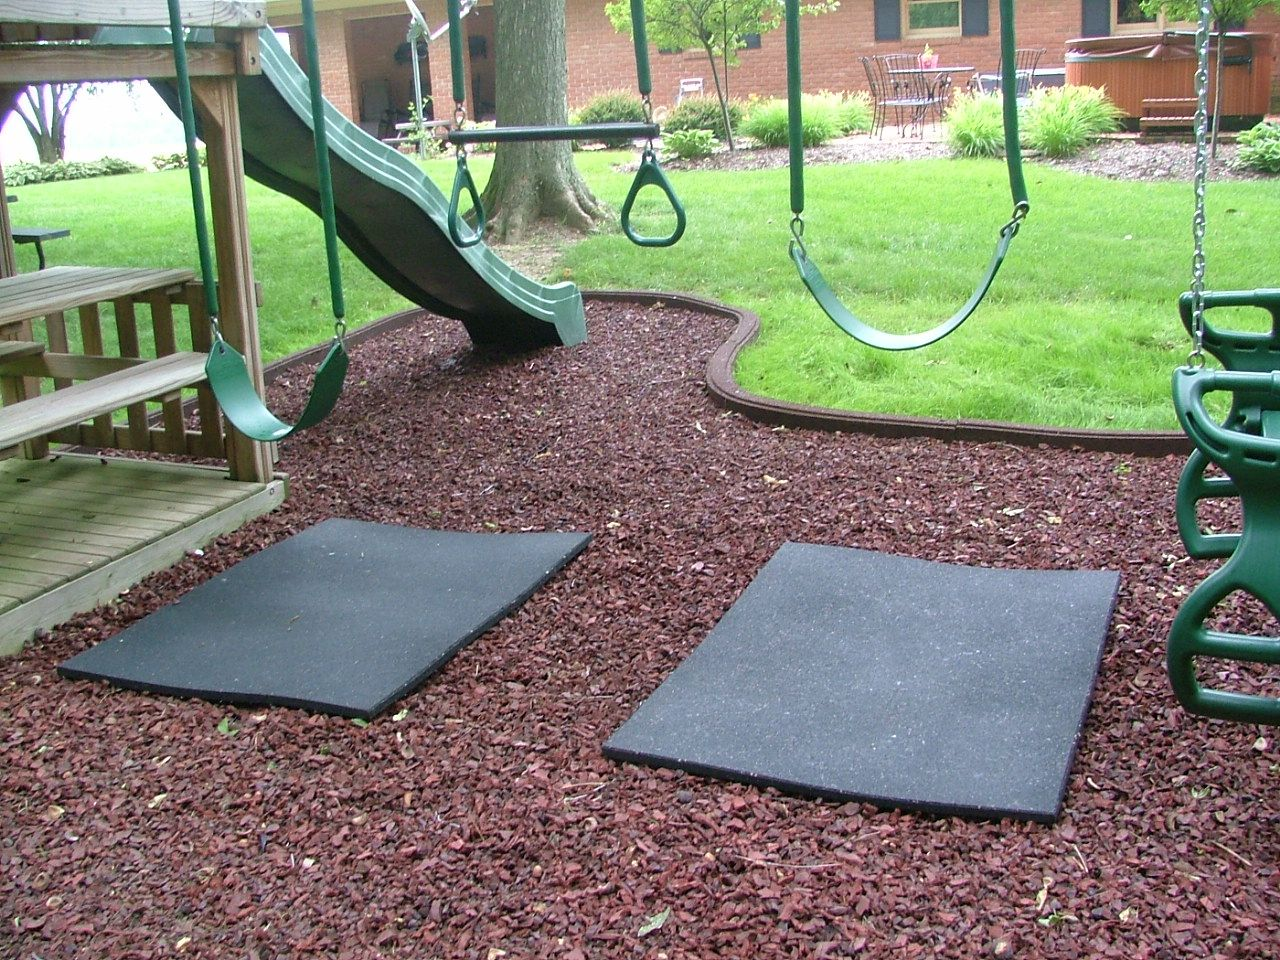 Rubber Mat Under Swings So You Don T Wear That Mulched Area Down